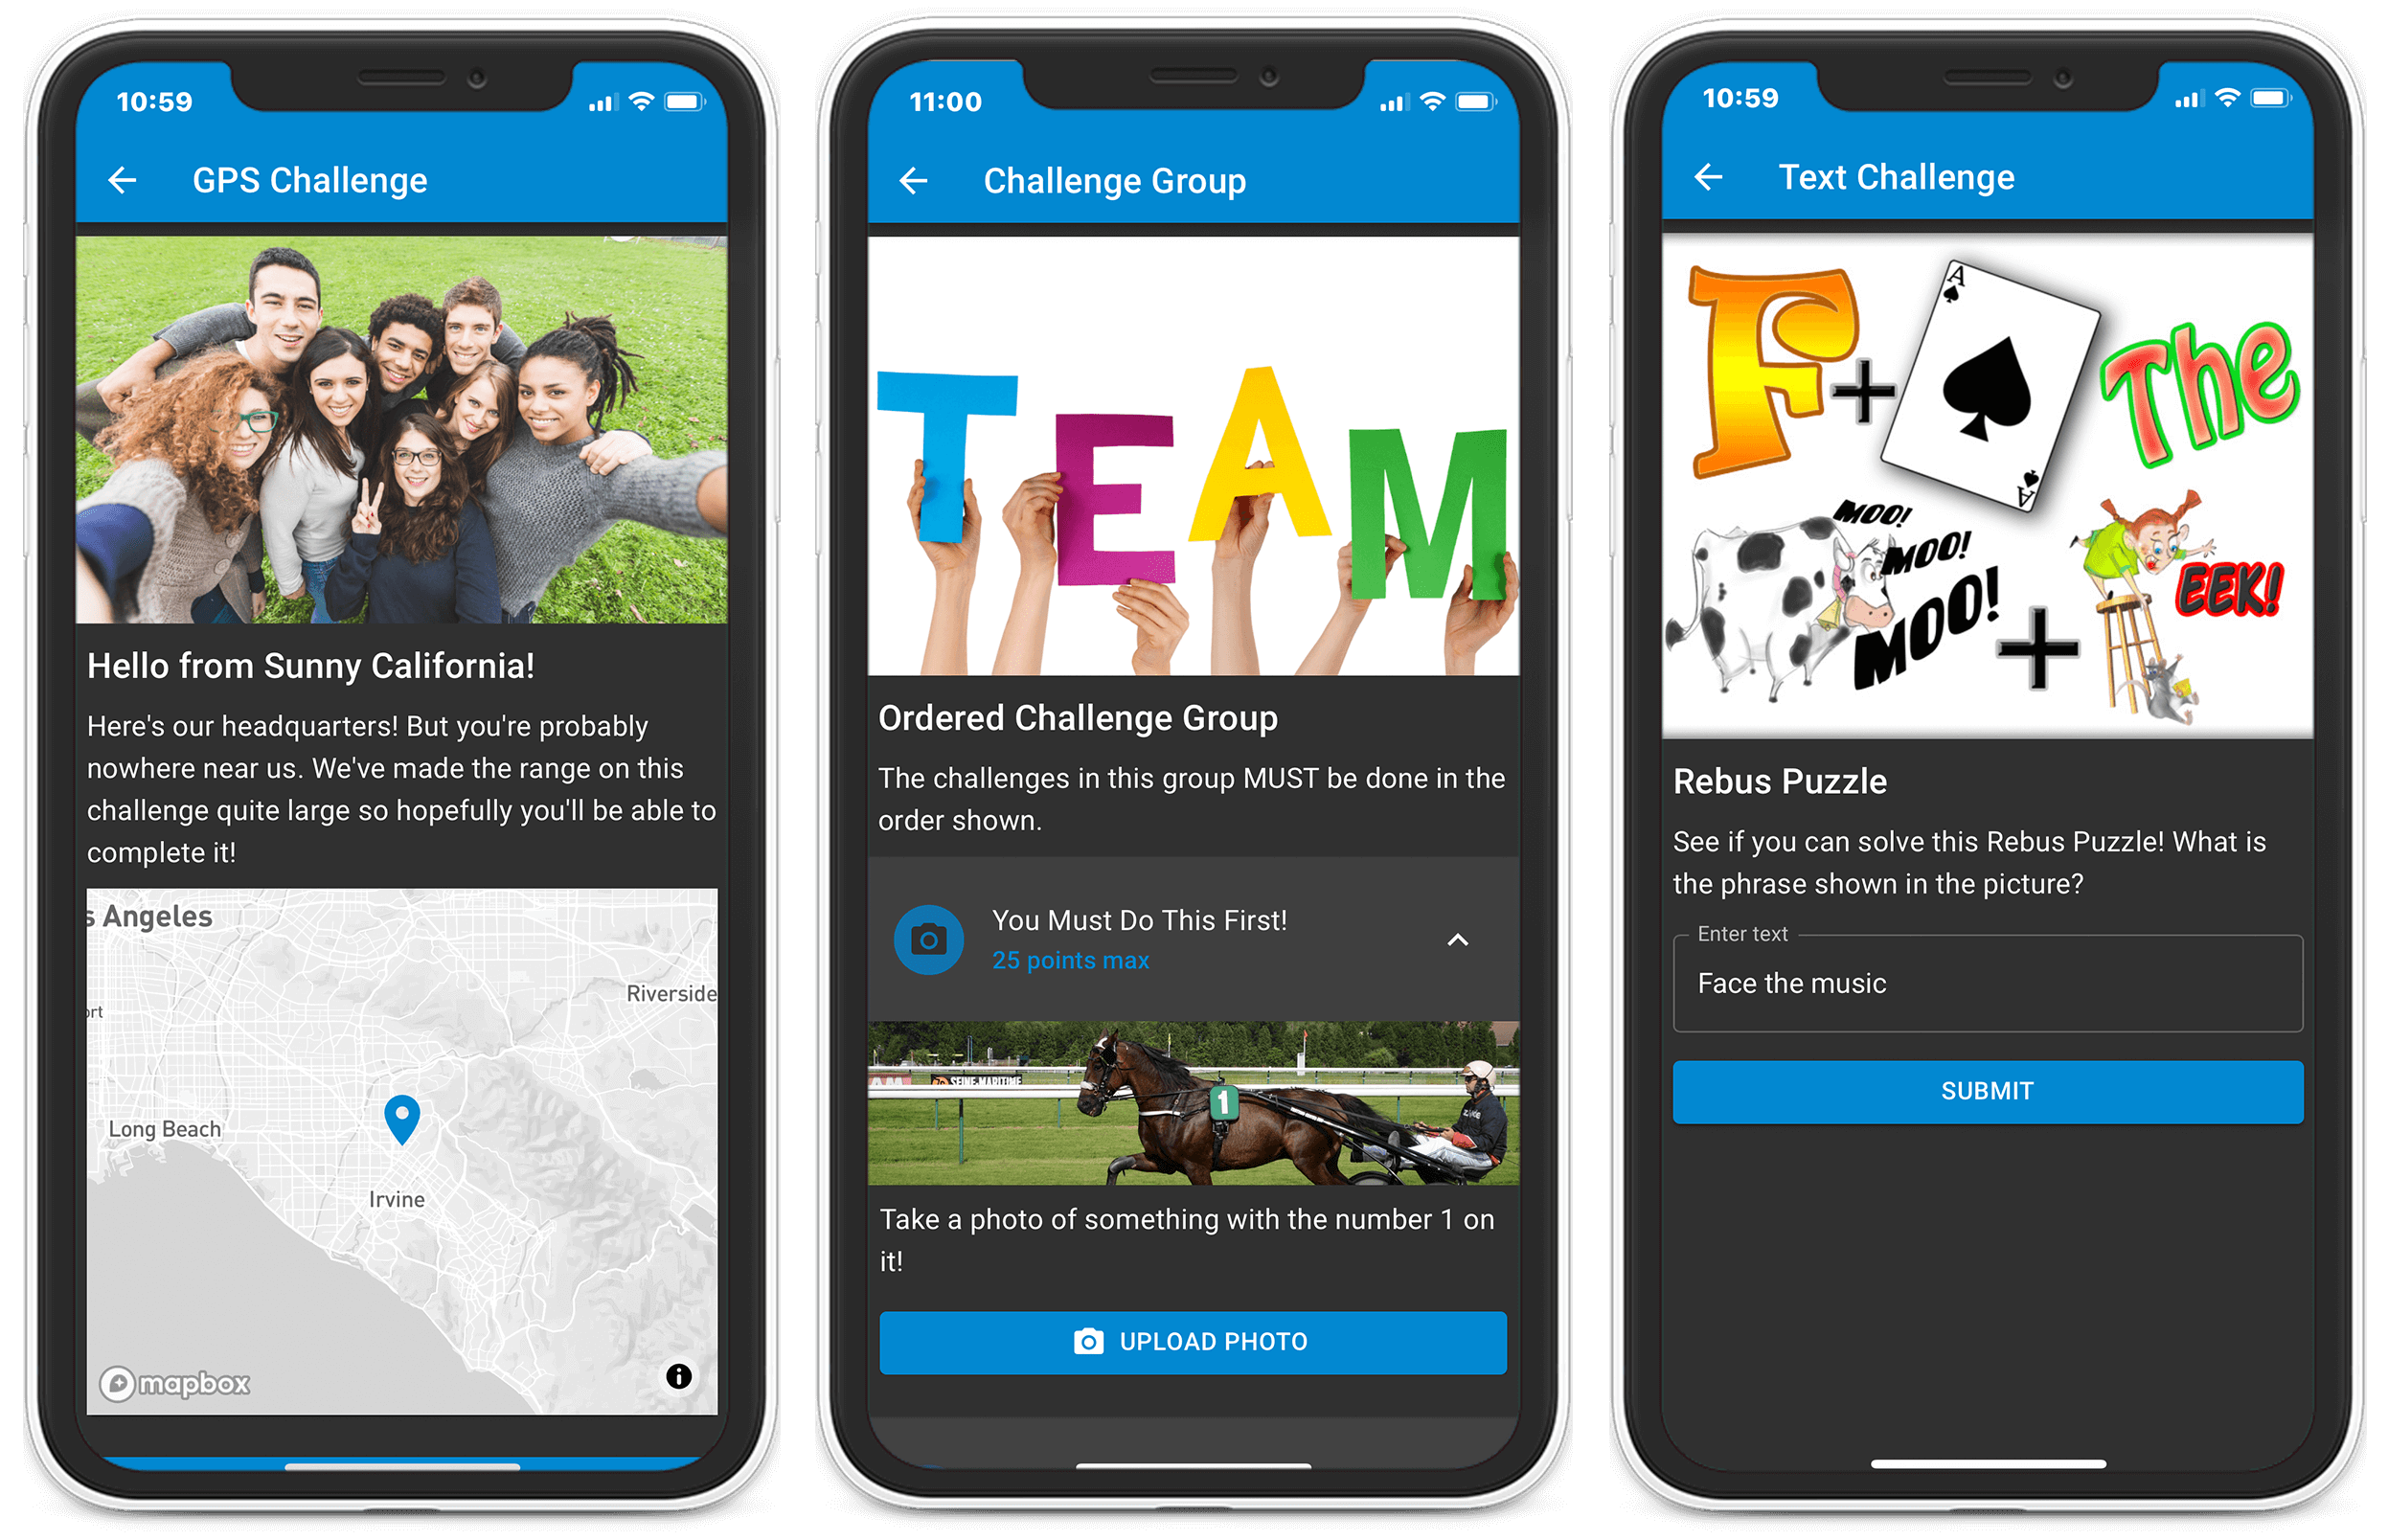 Eventzee Scavenger hunt app is the most customizable on the market. There are 7 challenge types offered and each event is branded to the company's branding.